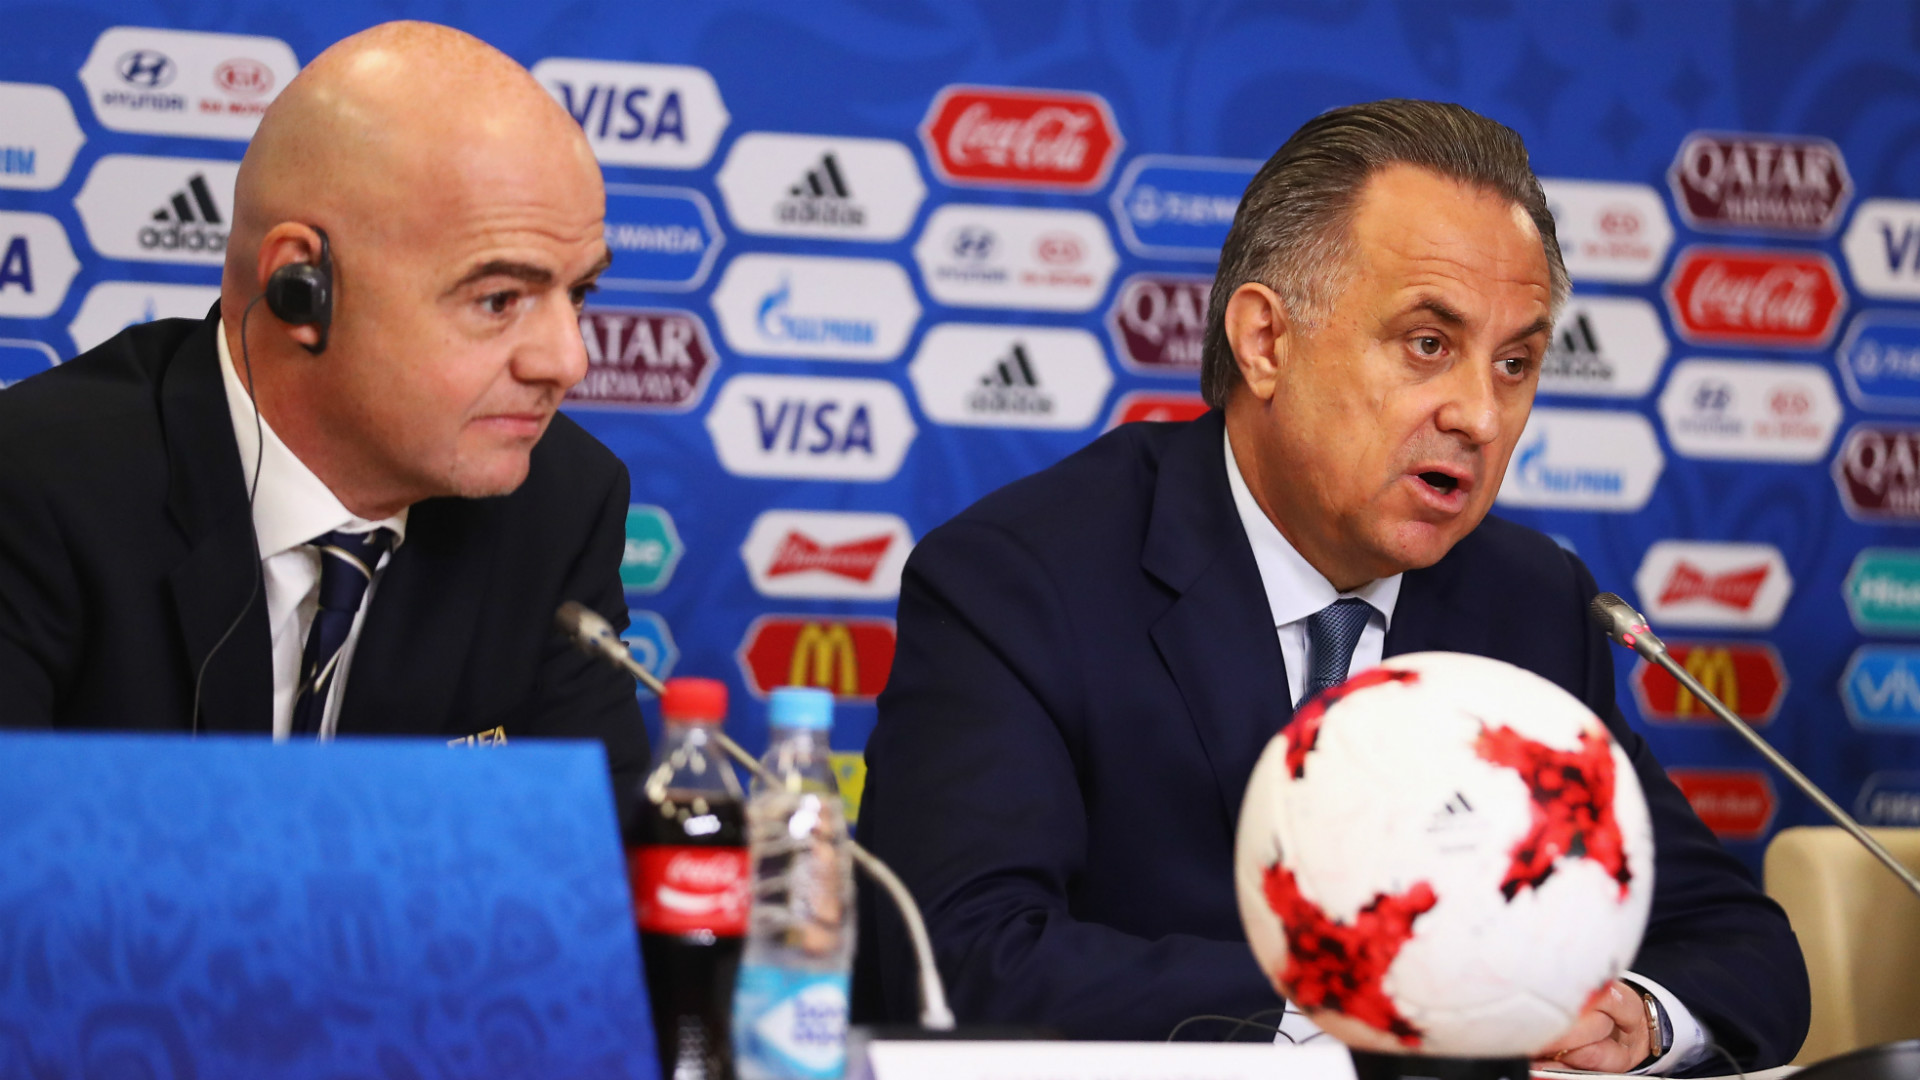 Vitaly Mutko commented on reports that Fabio Capello will be fired 06/16/2015 91